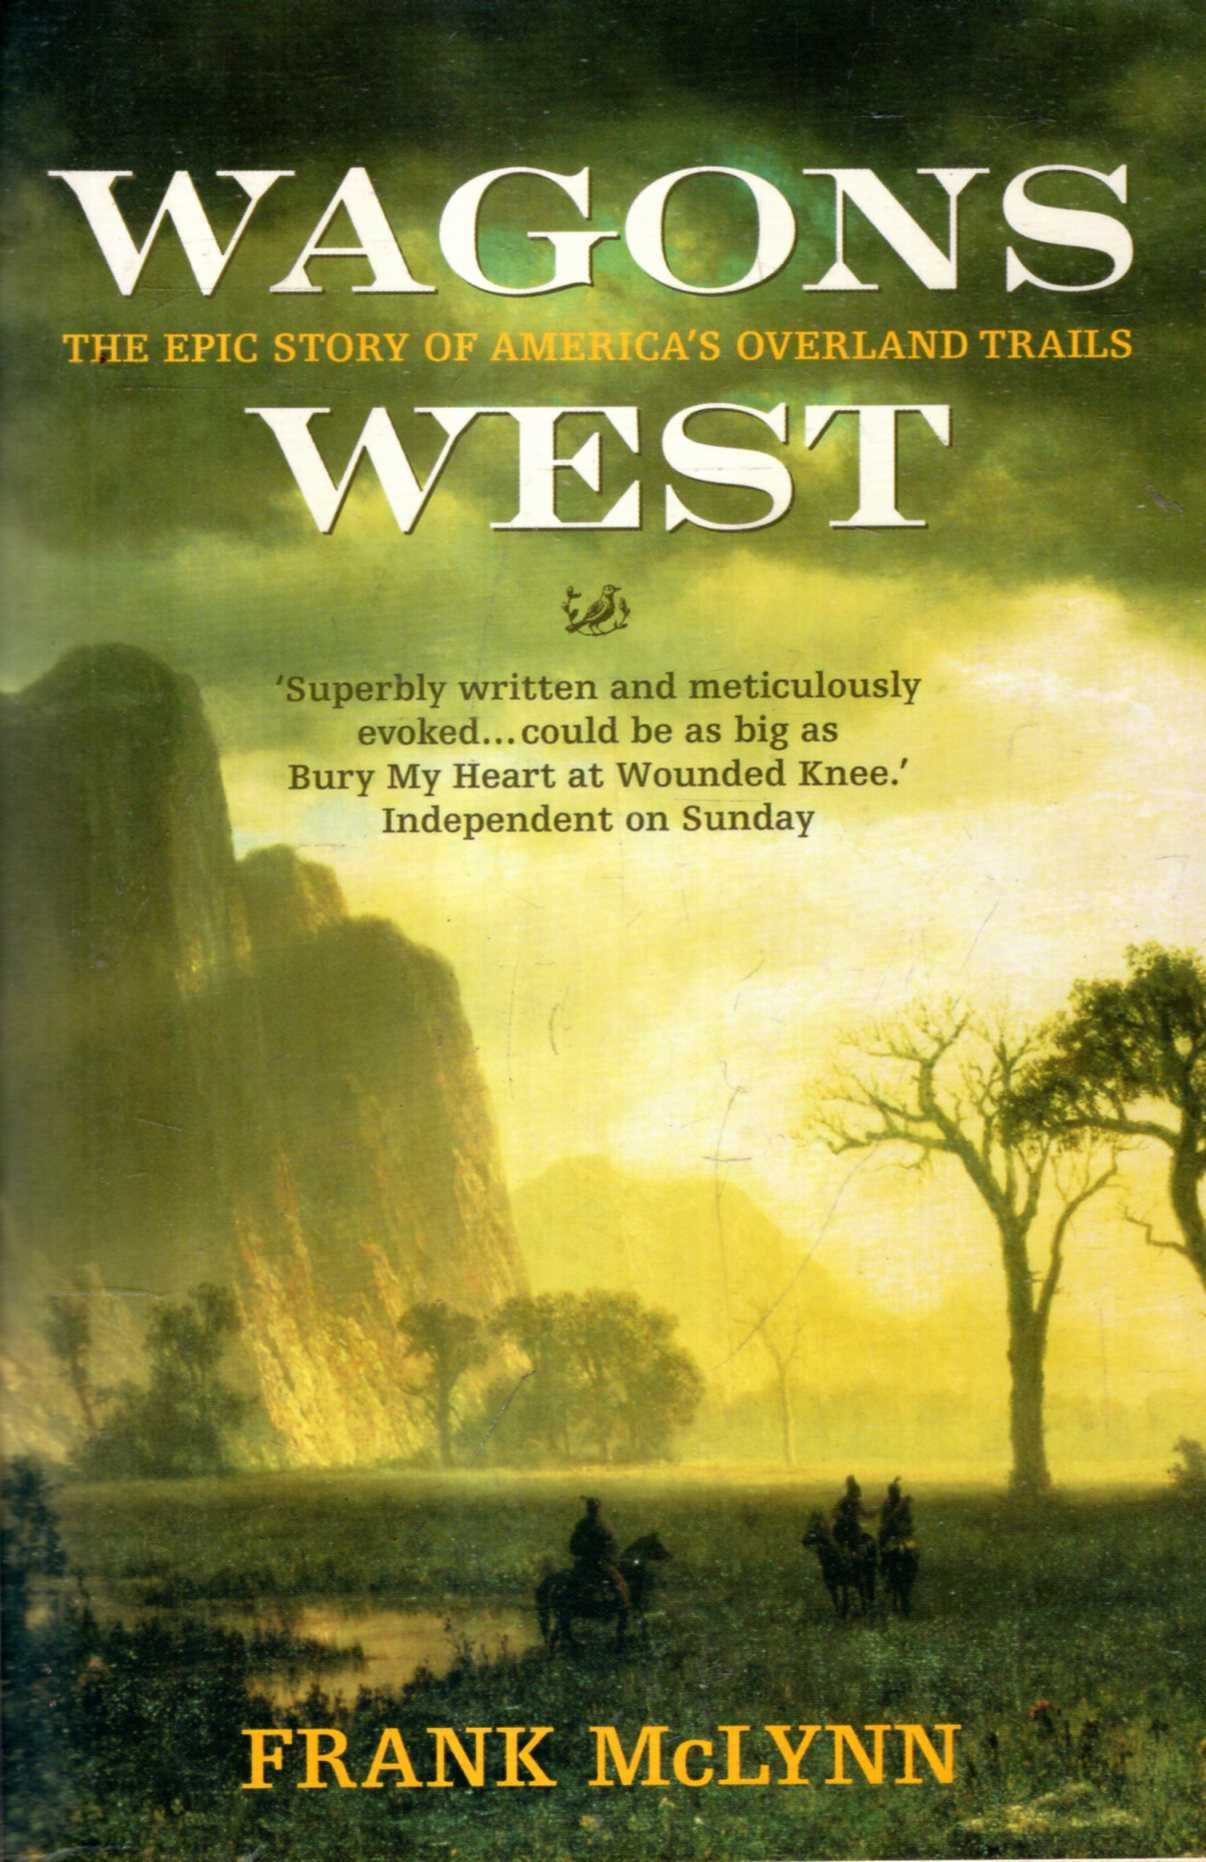 Image for Wagons West : The Epic Story of America's Overland Trails